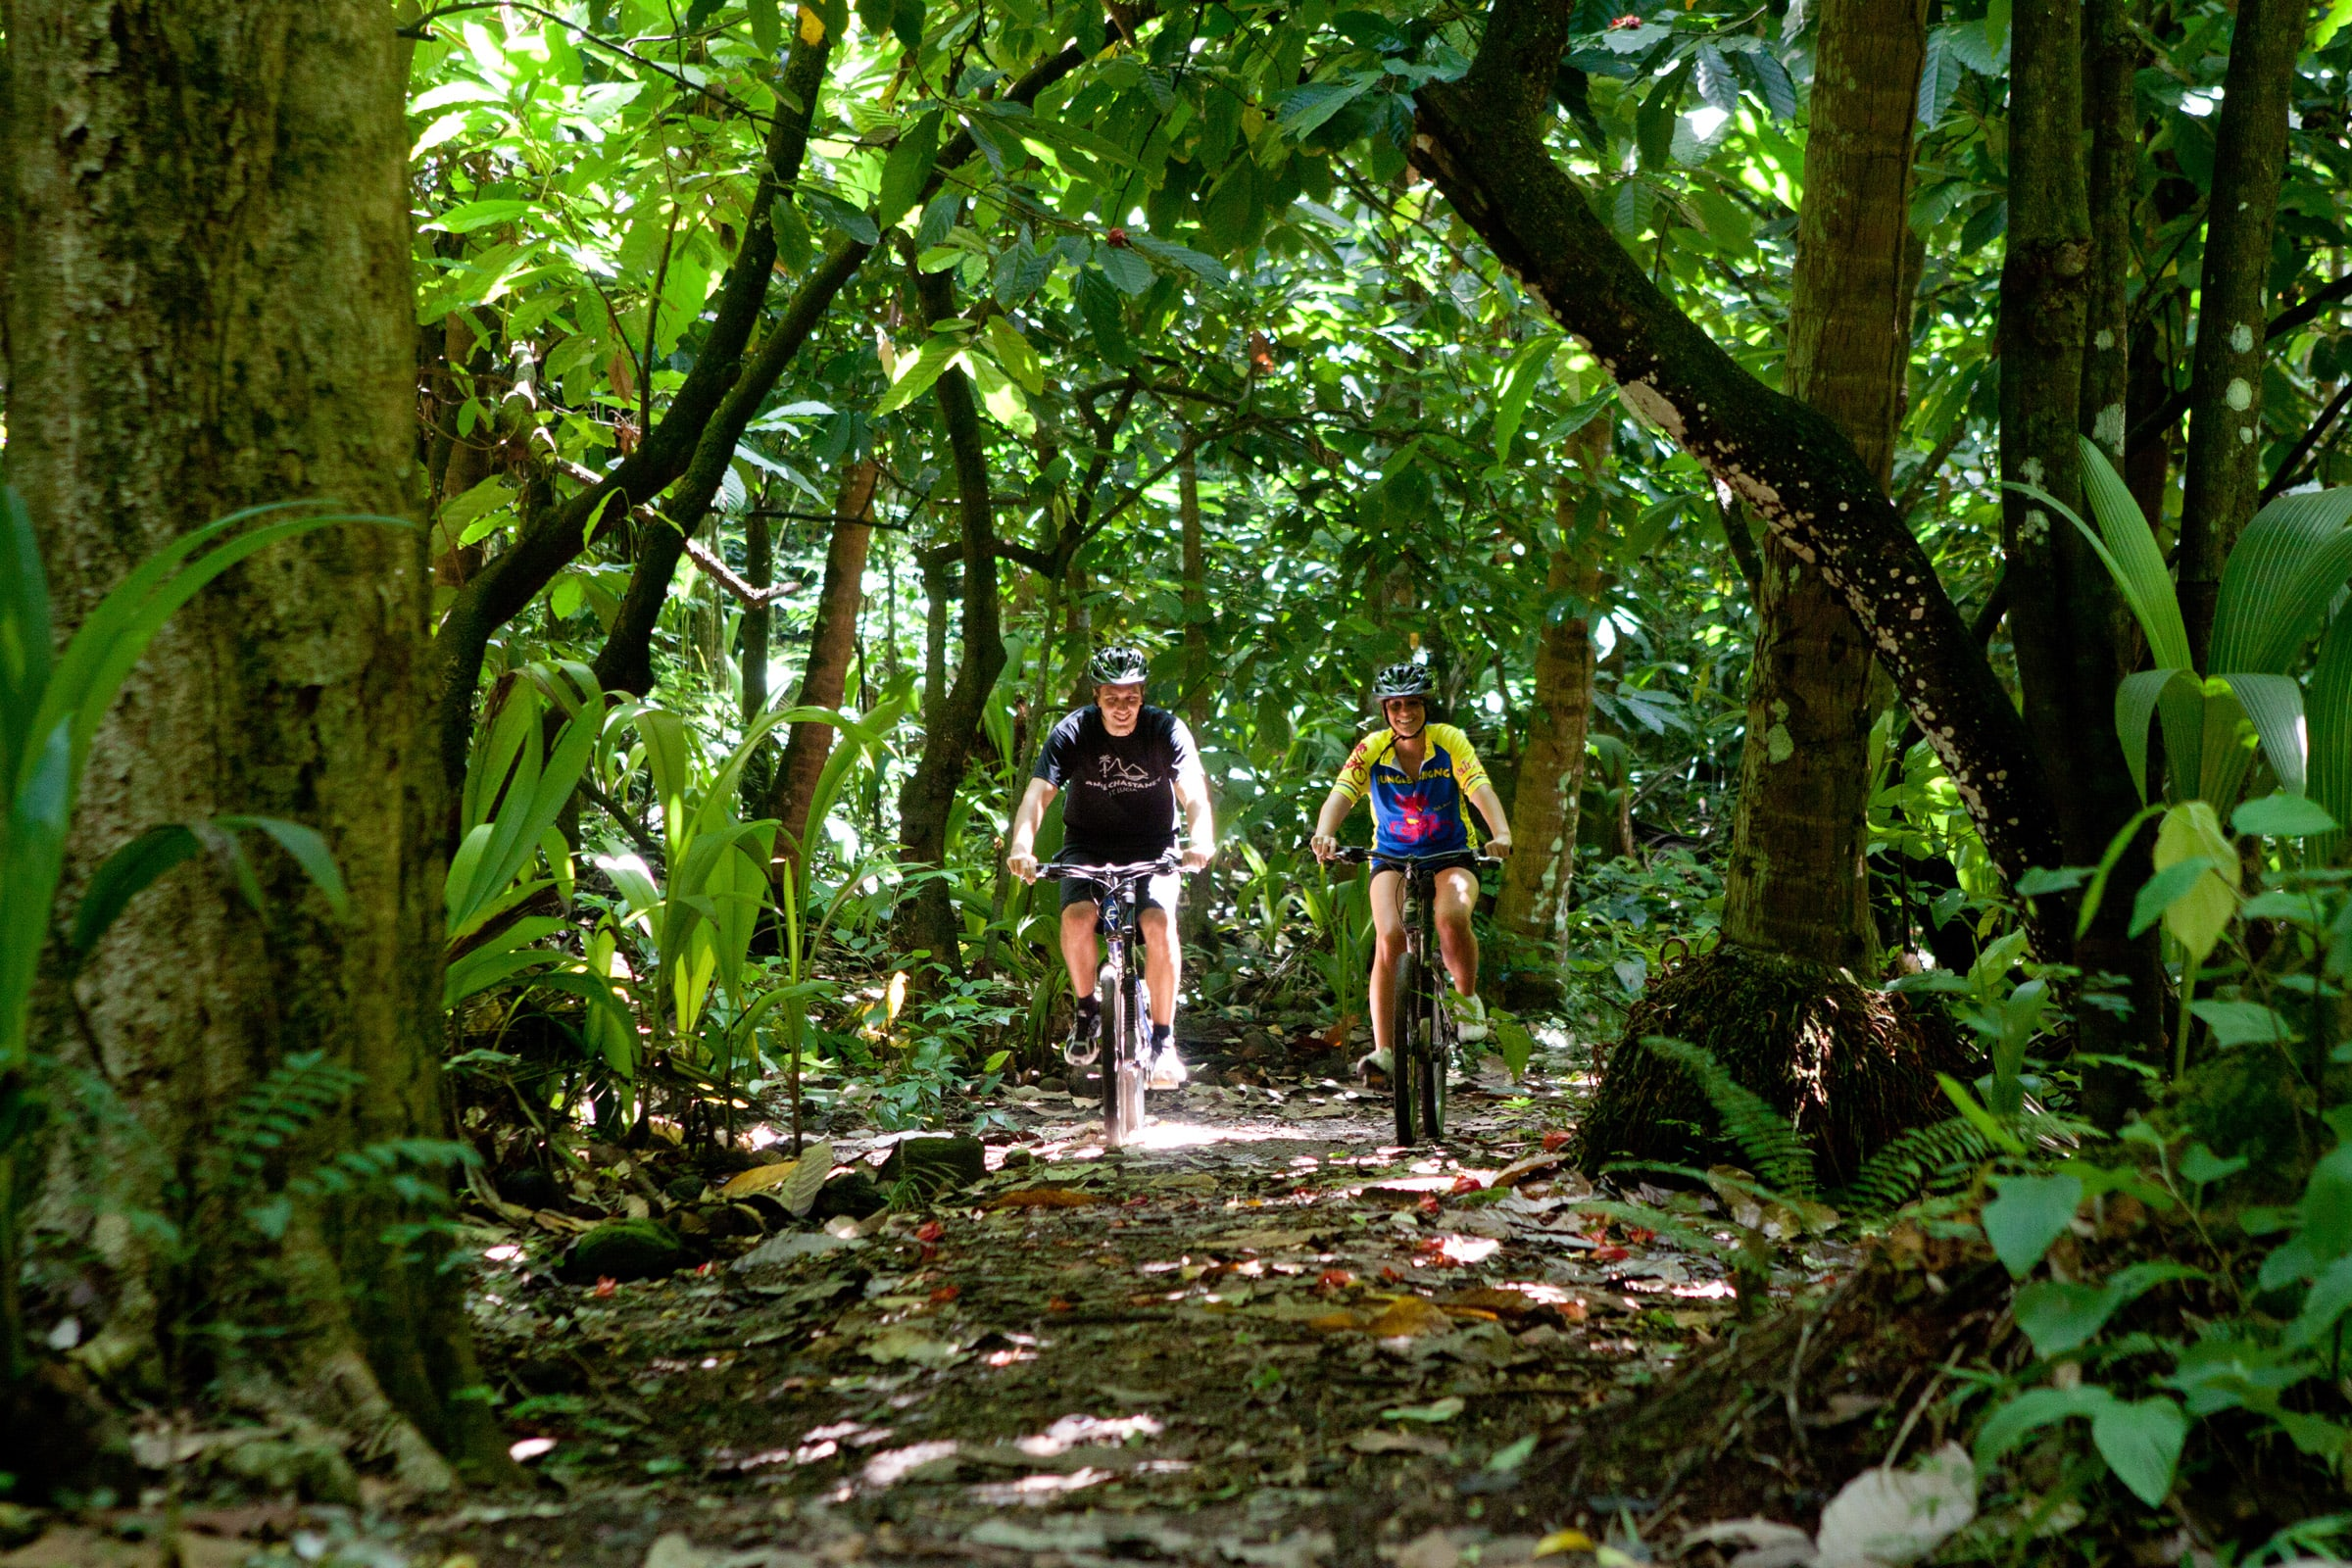 On the grounds of a former sugar plantation, a network of groomed bike trails lead through orchards, fields, and forests.